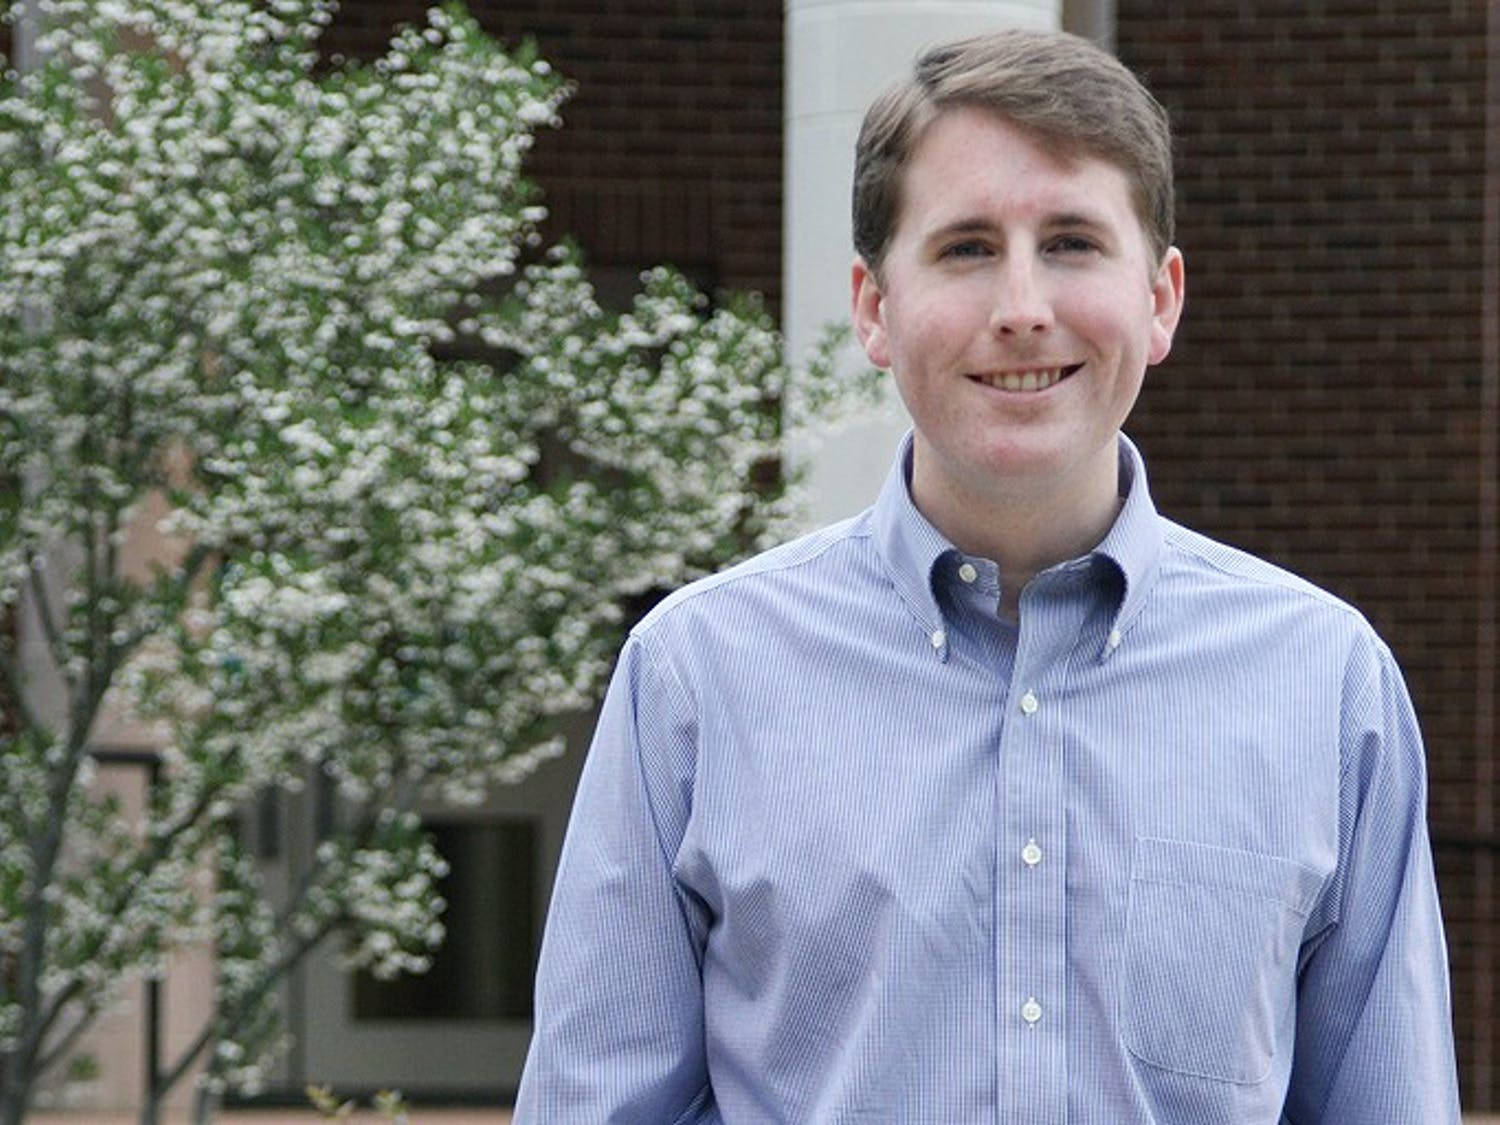 Phil Feagan is running for the North Carolina State Senate for District 47. Feagan, a Democrat, will receive his law degree from UNC in May 2012.